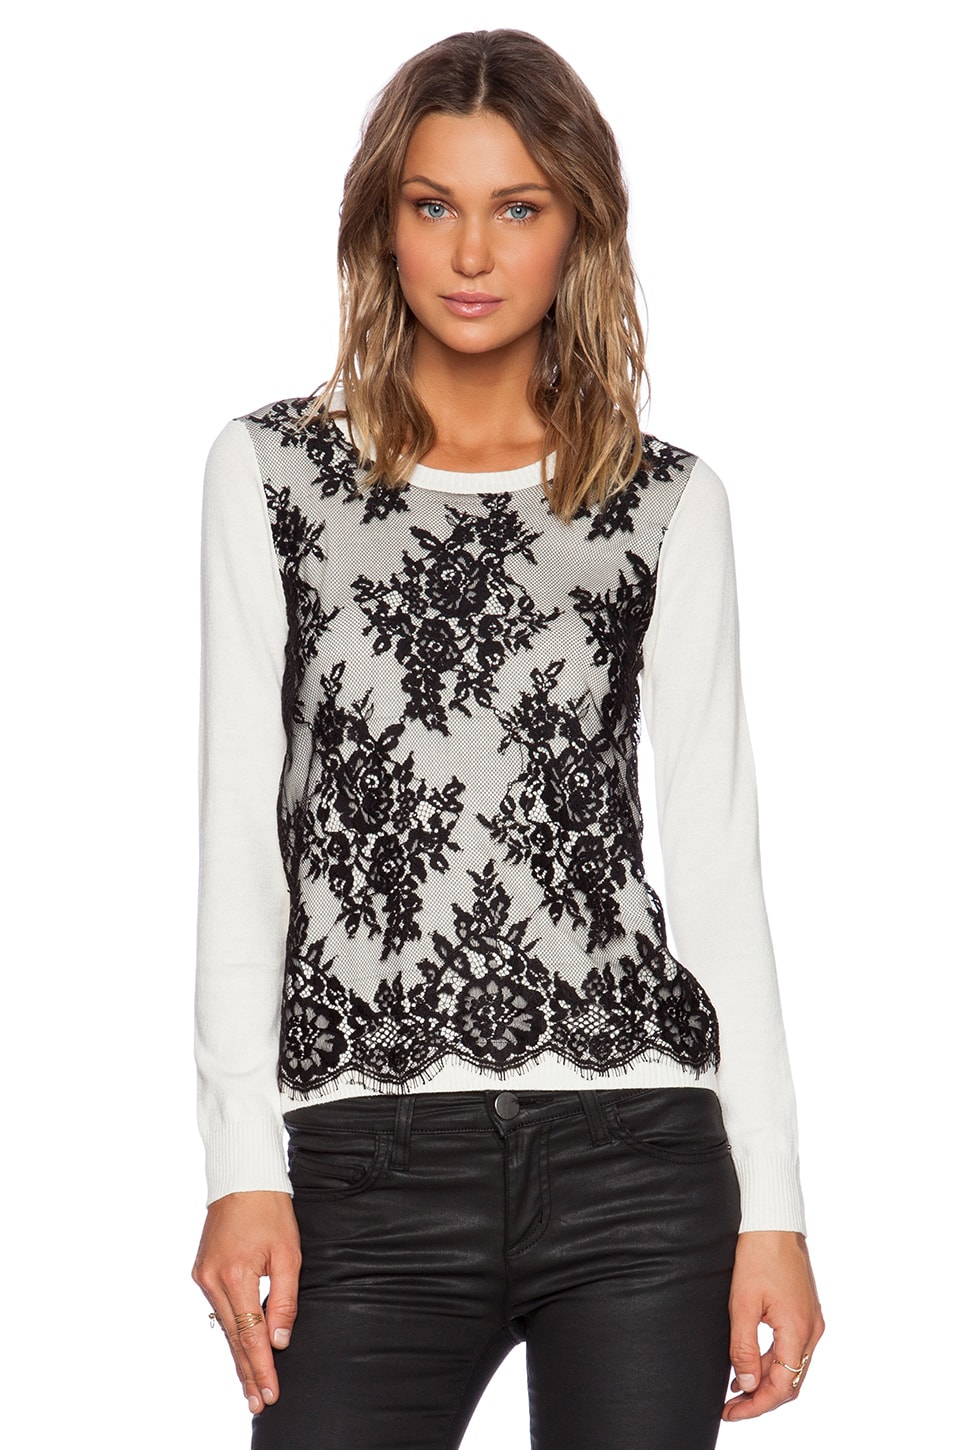 Central Park West Vinegar Hill Lace Overlay Sweater in Ivory | REVOLVE